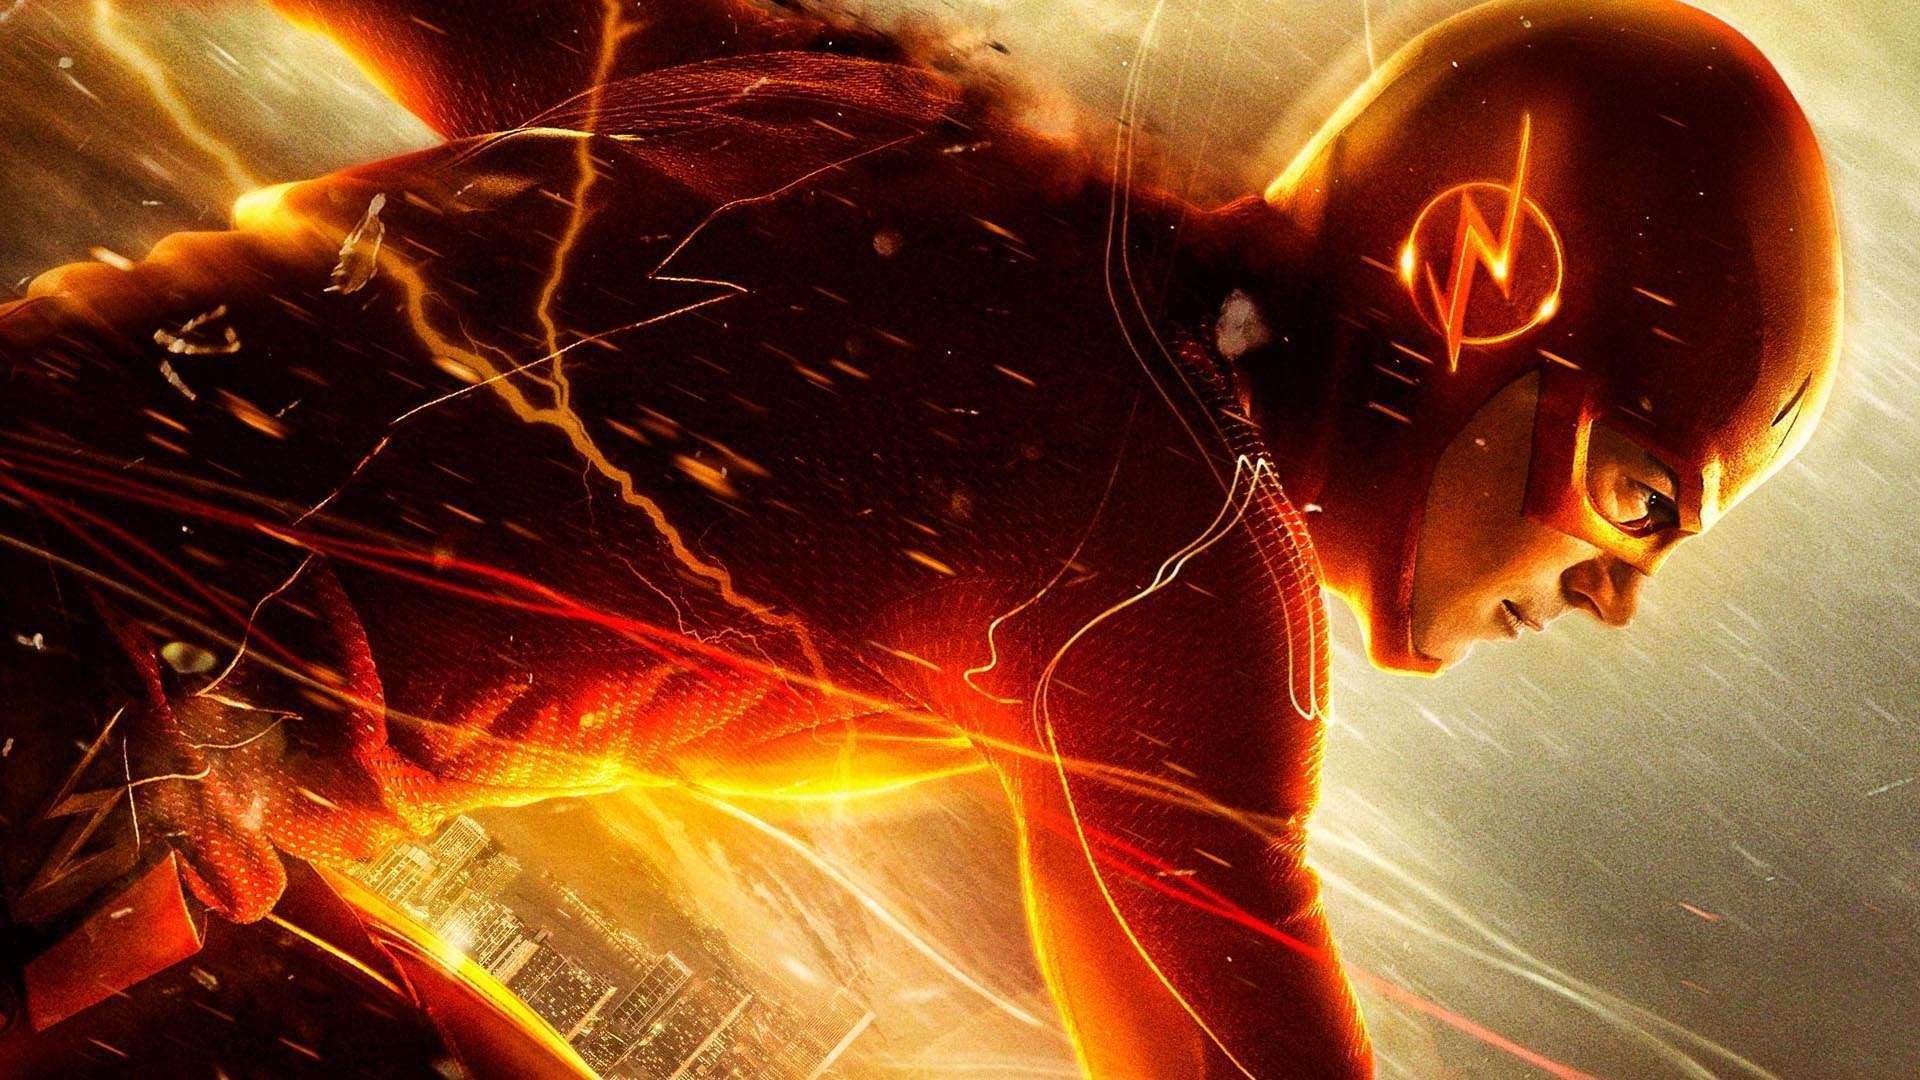 … the flash wallpapers wallpaper cave …